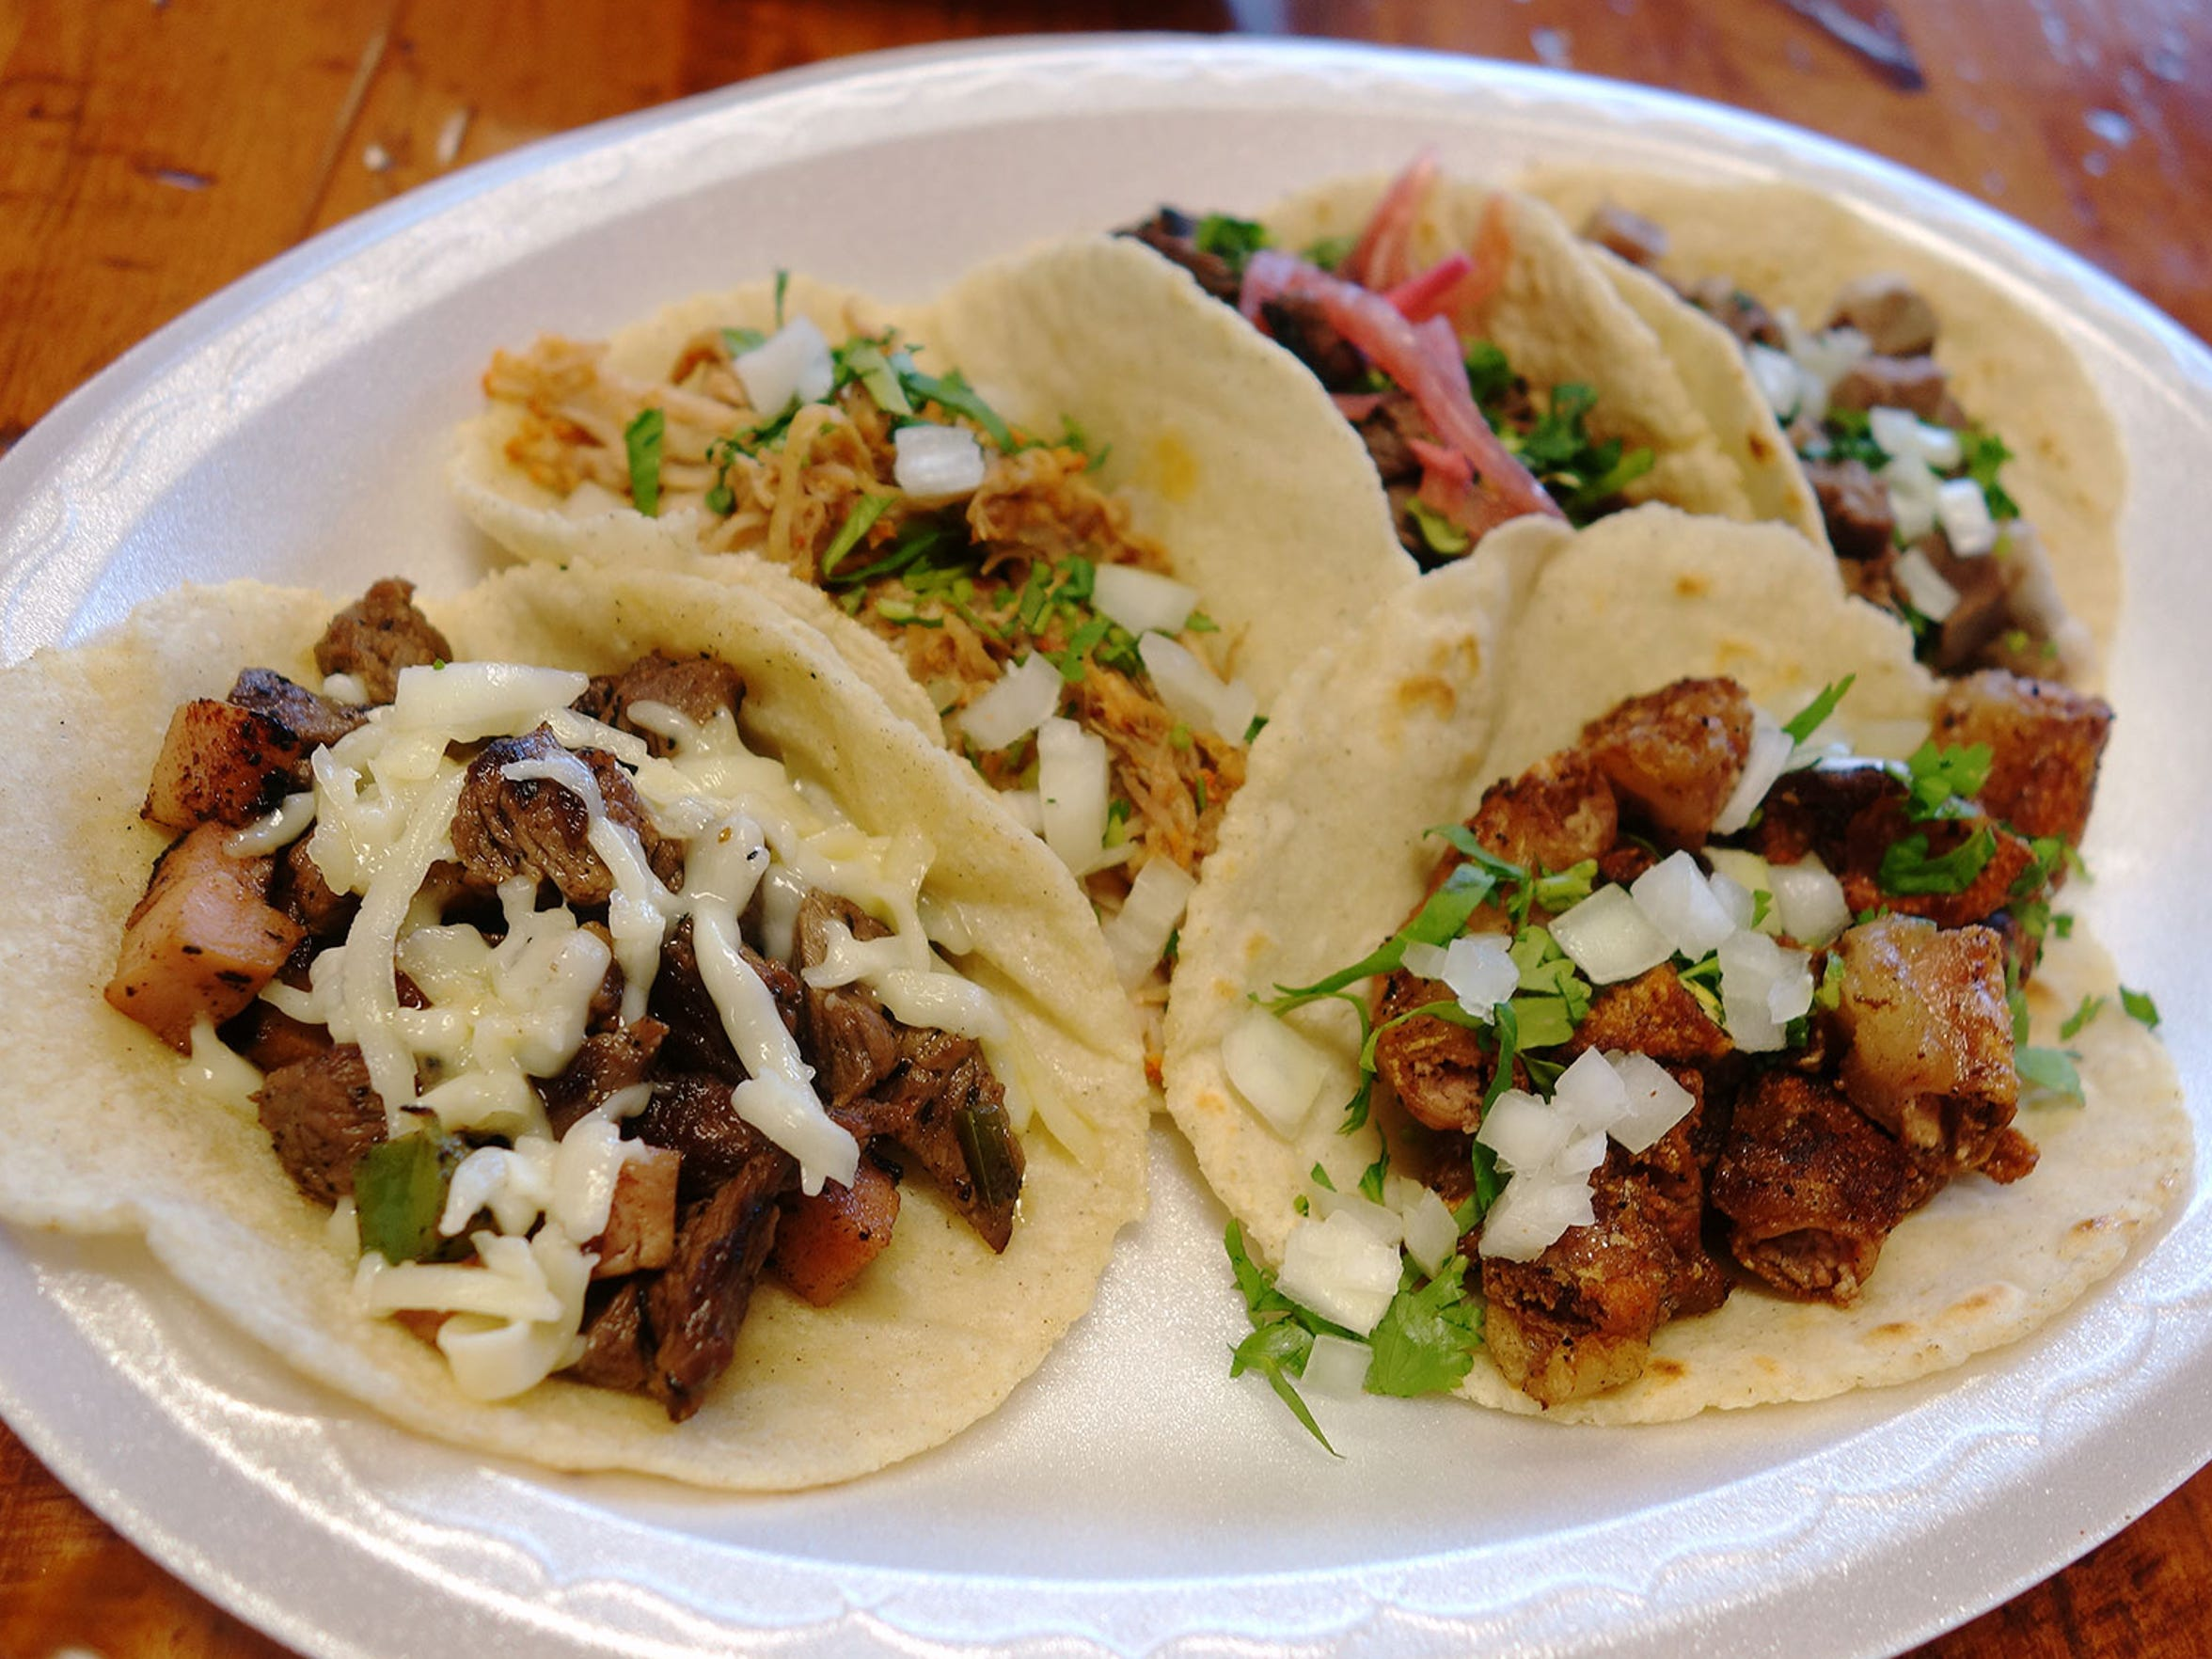 Tacos Chiwas is home to Chihuahuan flour gorditas, excellent frijoles charros and one of the best tripe tacos dining critic Dominic Armato has ever sampled.